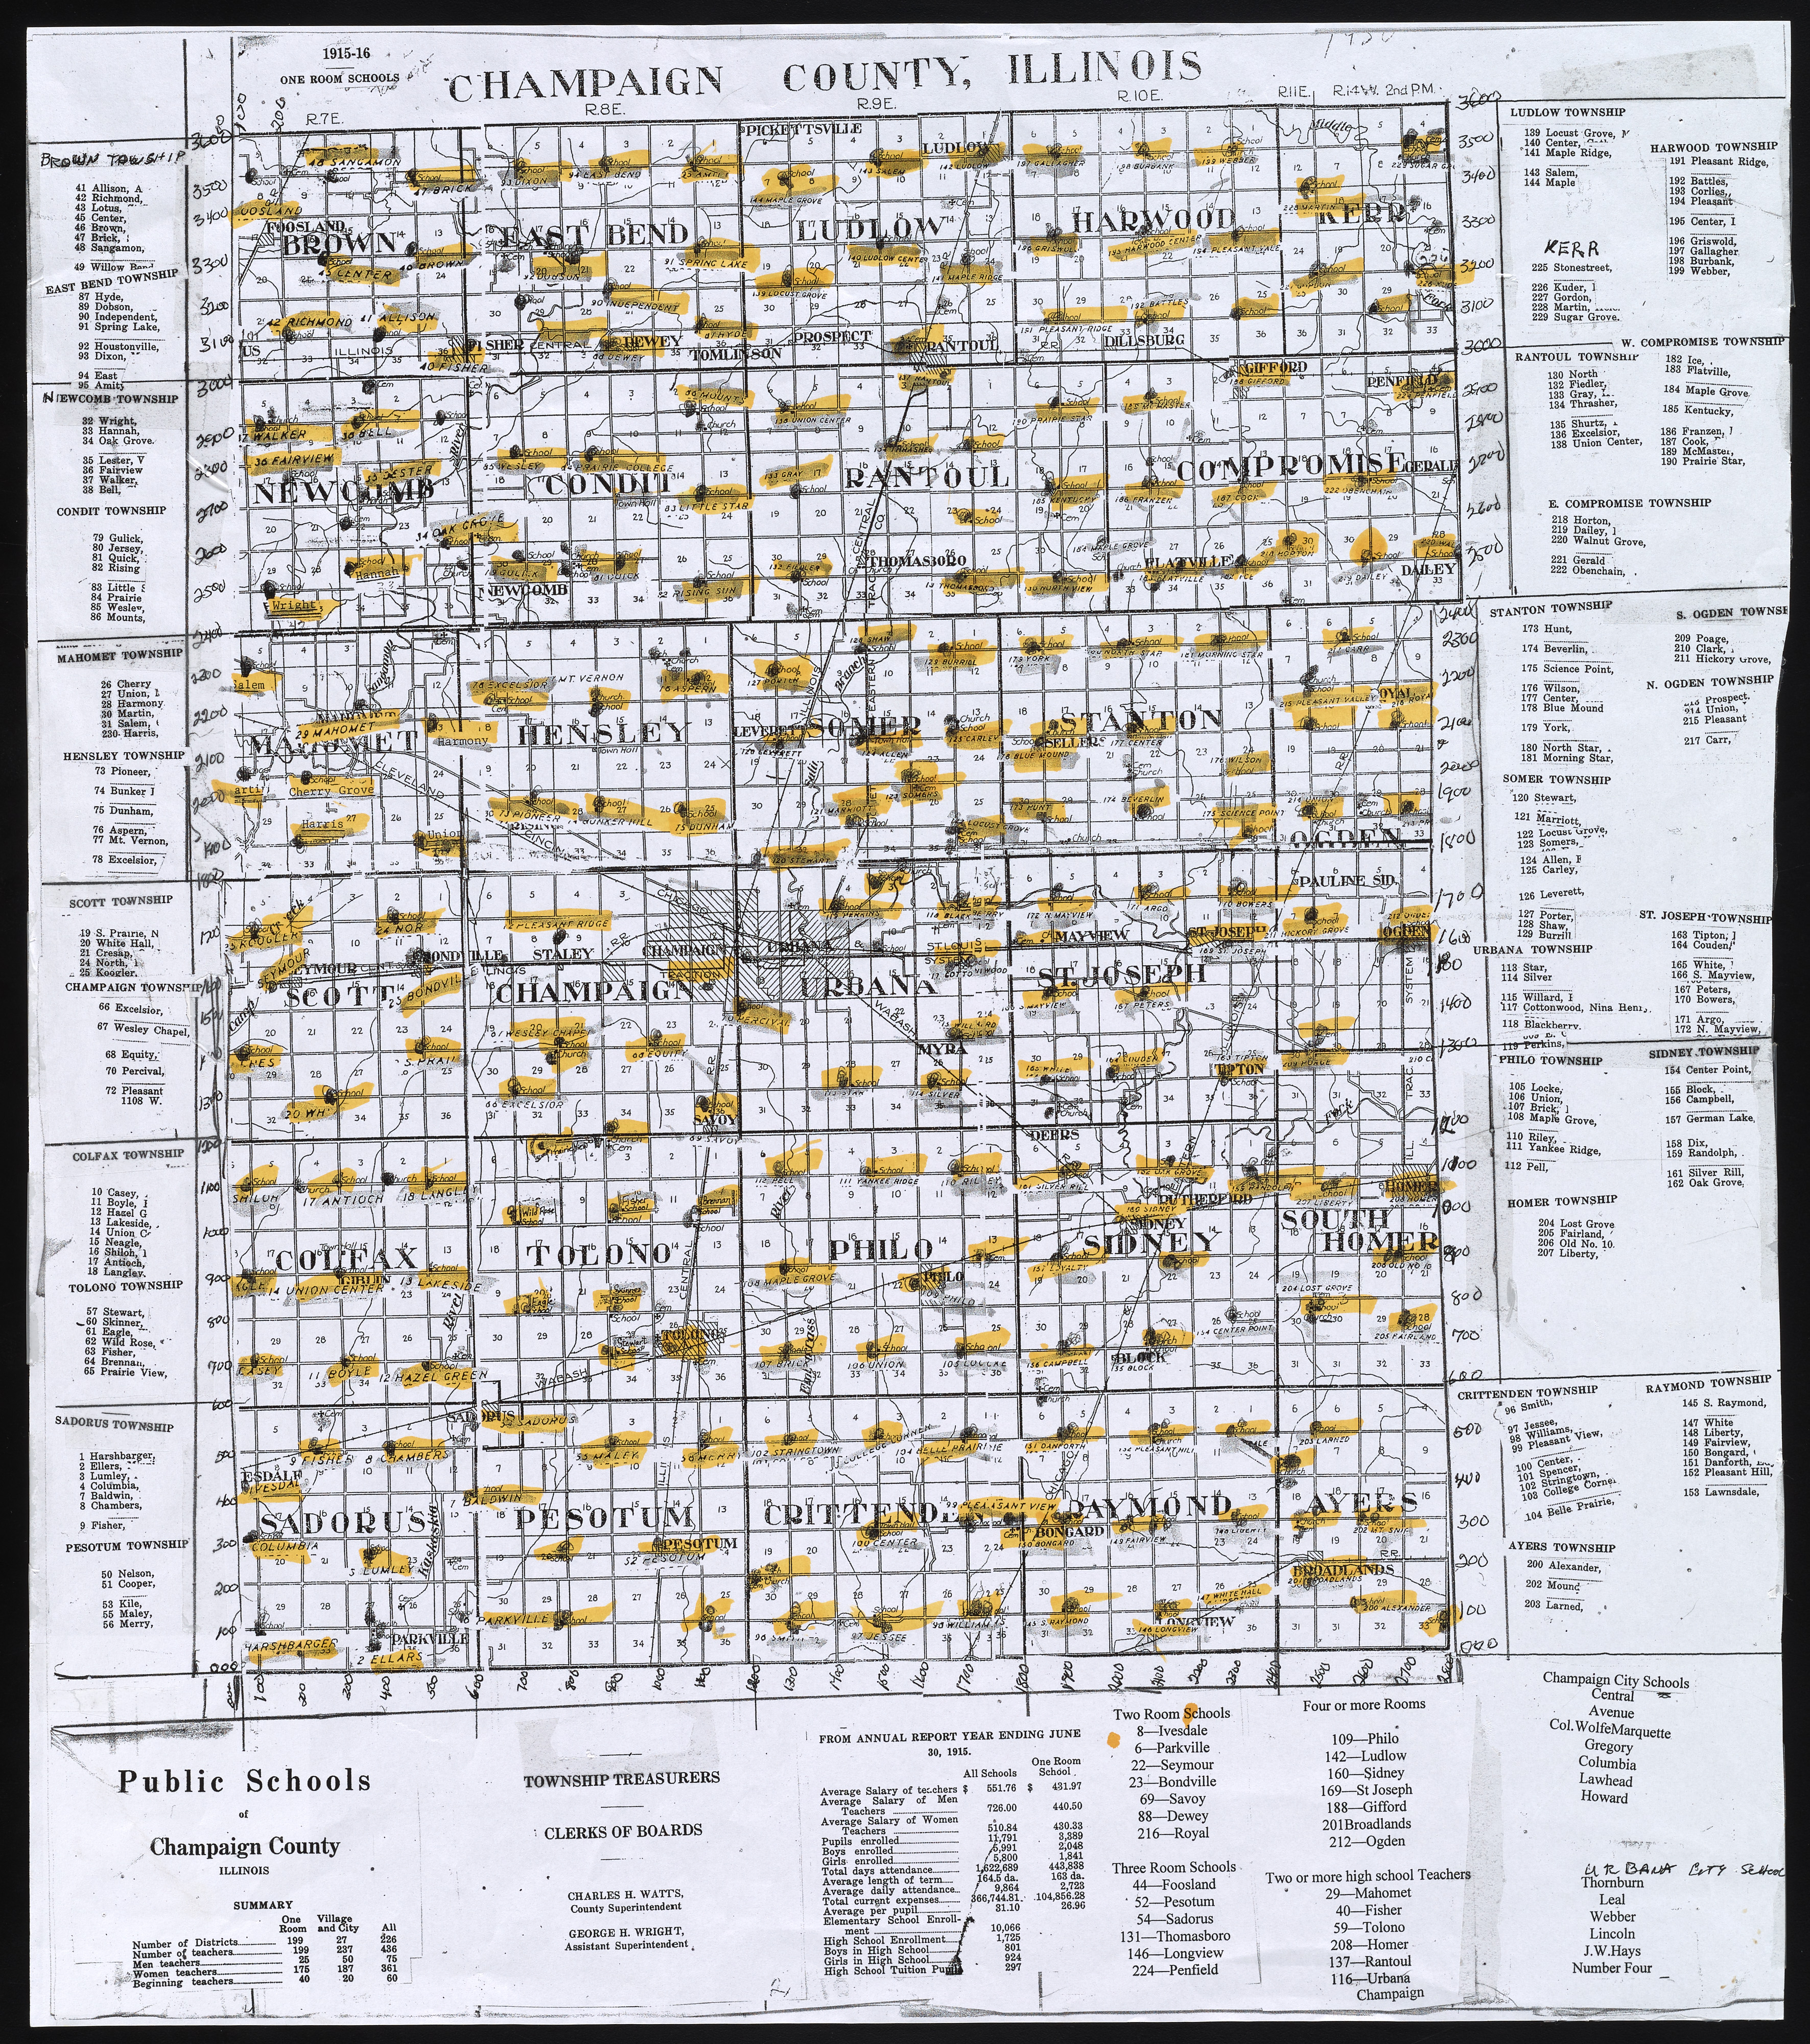 One Room Schools map, Champaign County 1915-1916